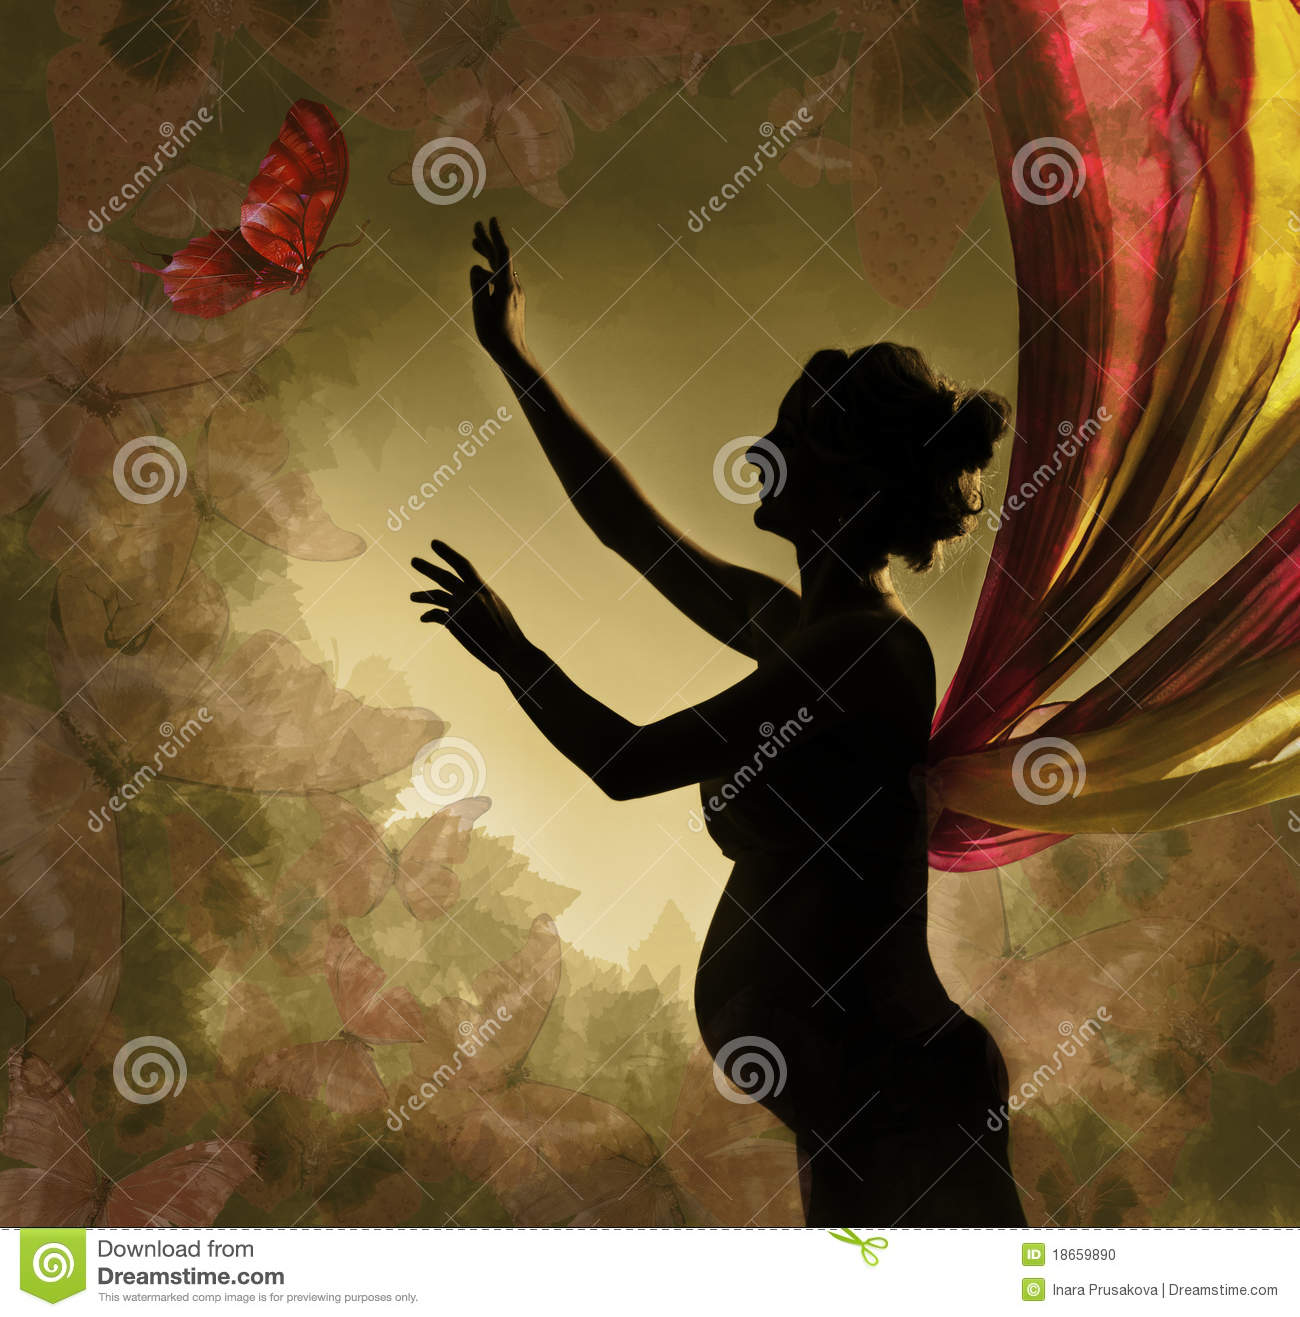 Pregnant woman catching butterfly.